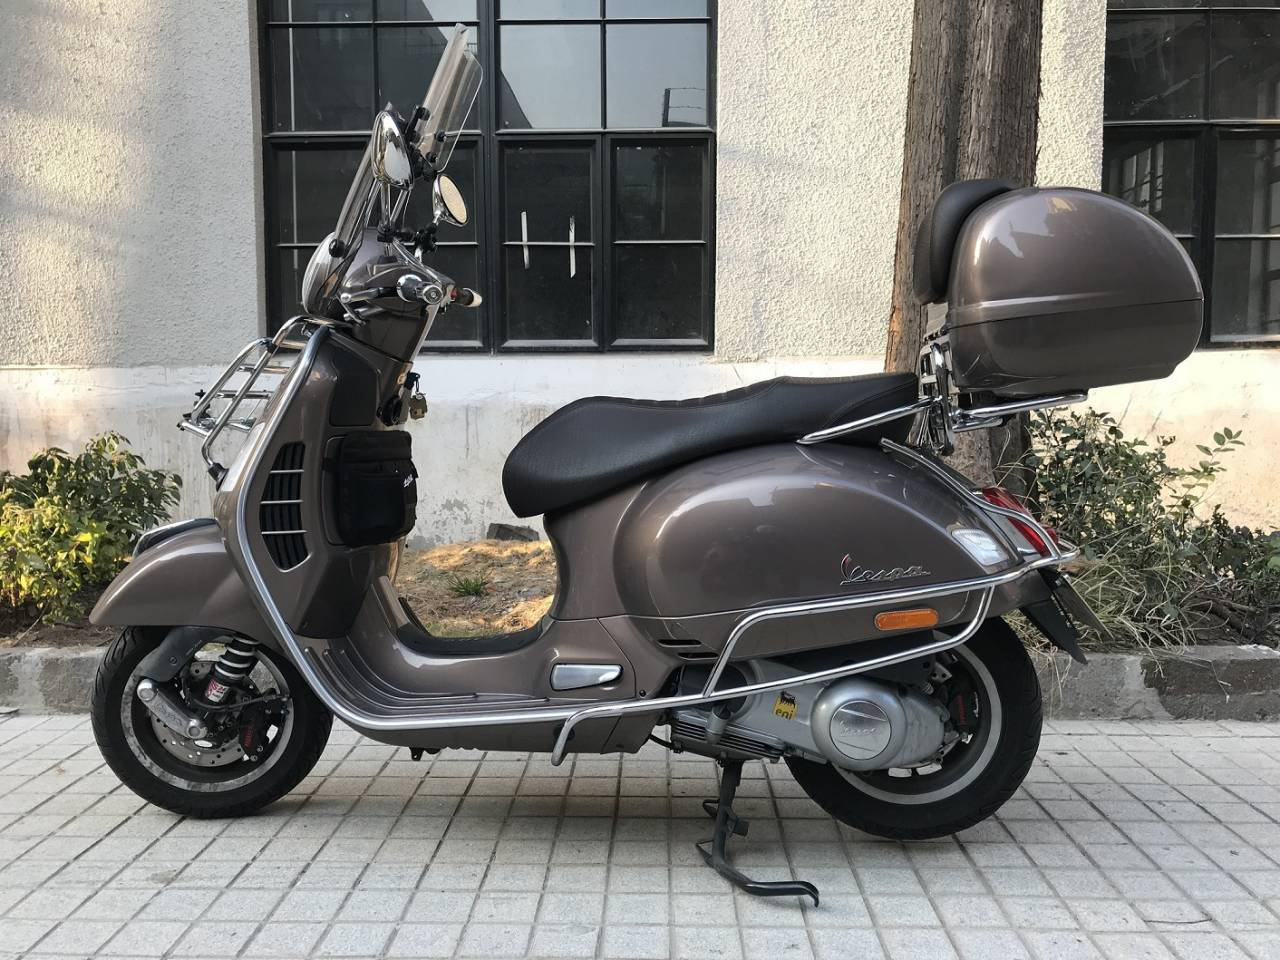 Custom Vespa Gts 300 Touring Abs Asr From All Around The World Webike